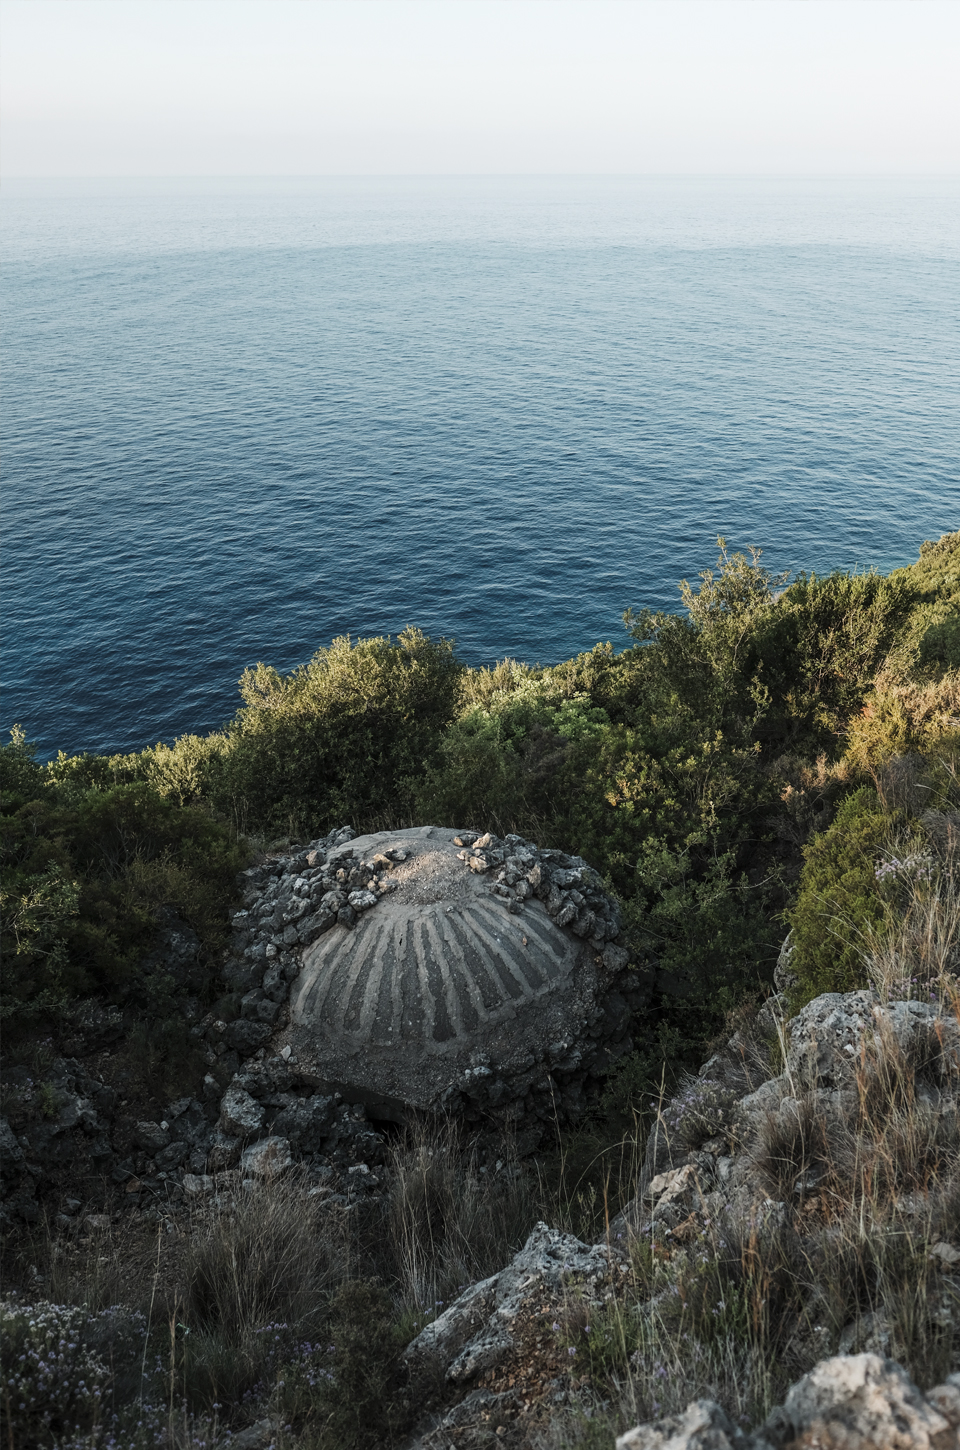 Bunker at the edge of the Adriatic sea on the coast of Albania